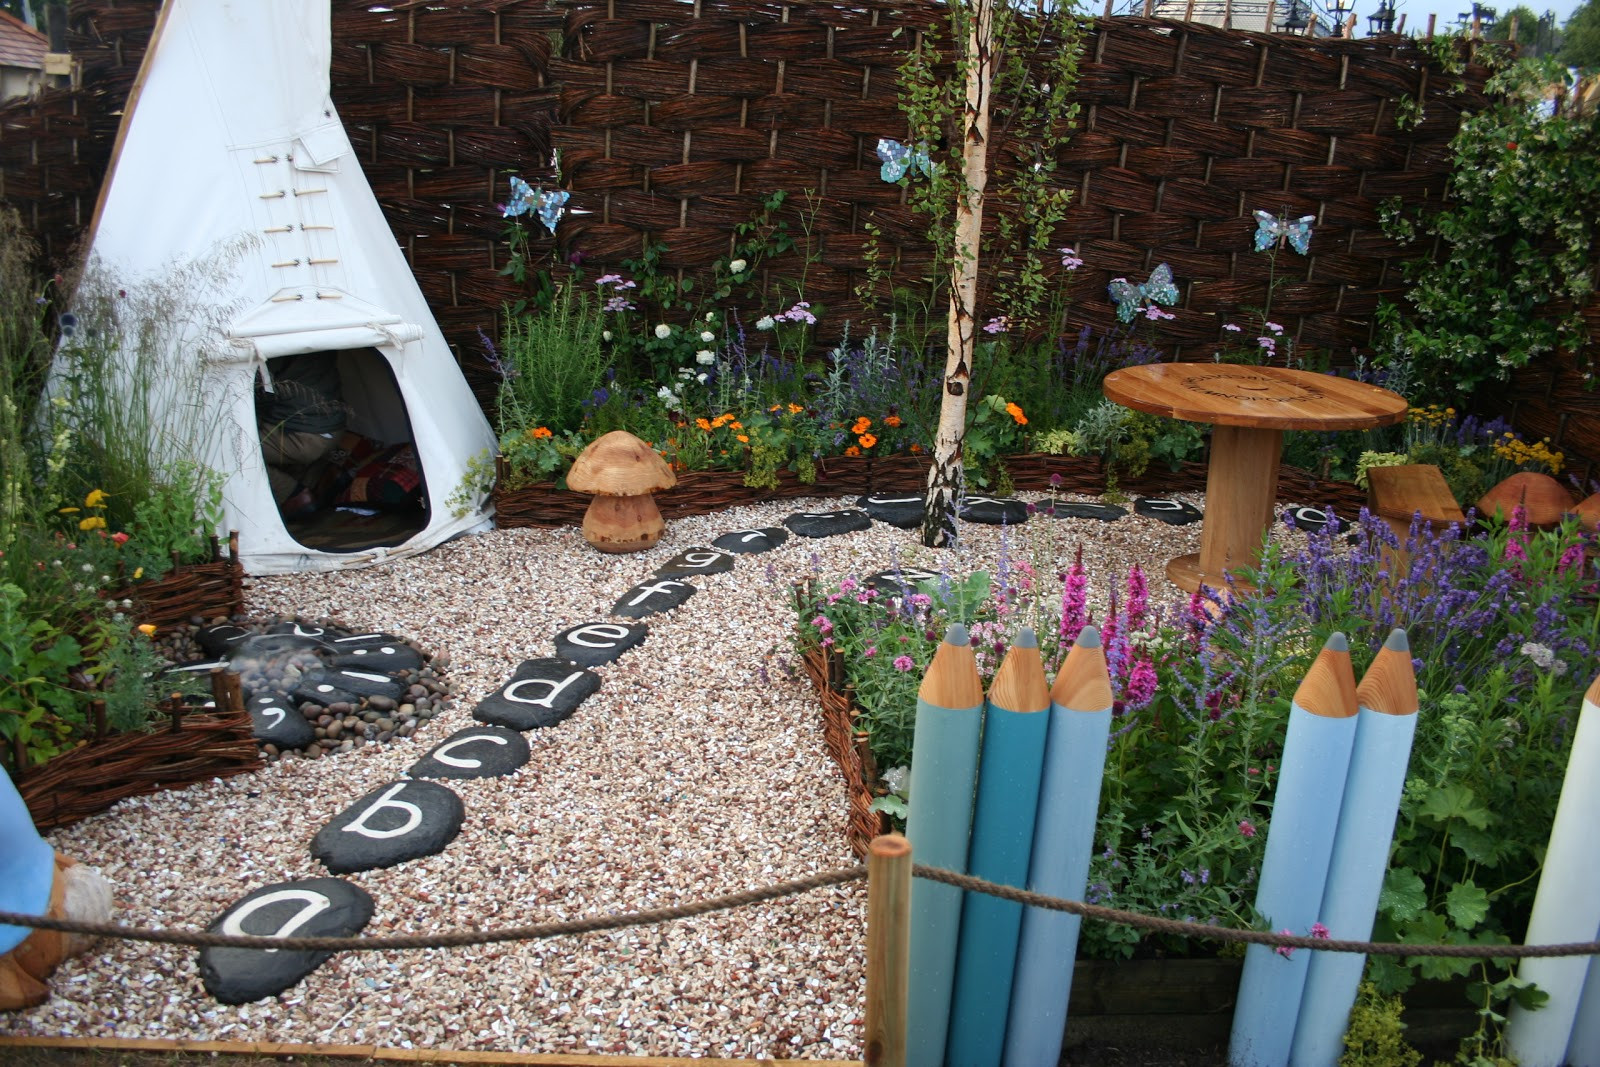 Kid Friendly Backyard Ideas  Out2play in the garden Opportunity to Design a Garden for